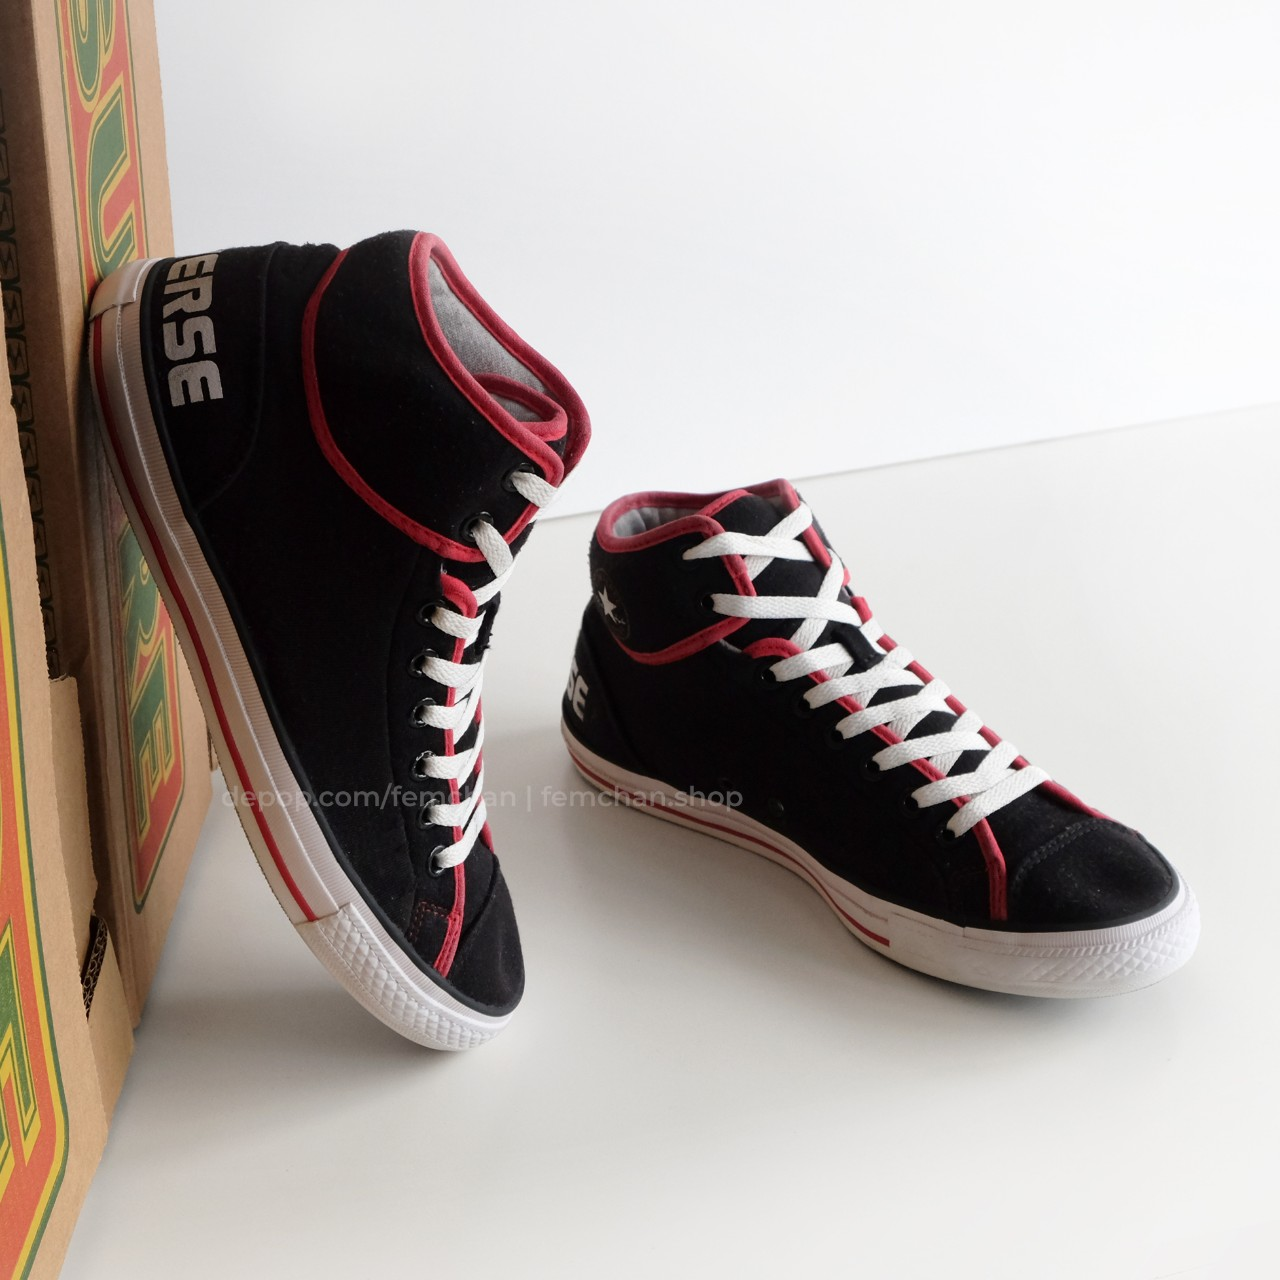 Product Image 1 - Vintage Converse All Stars w/